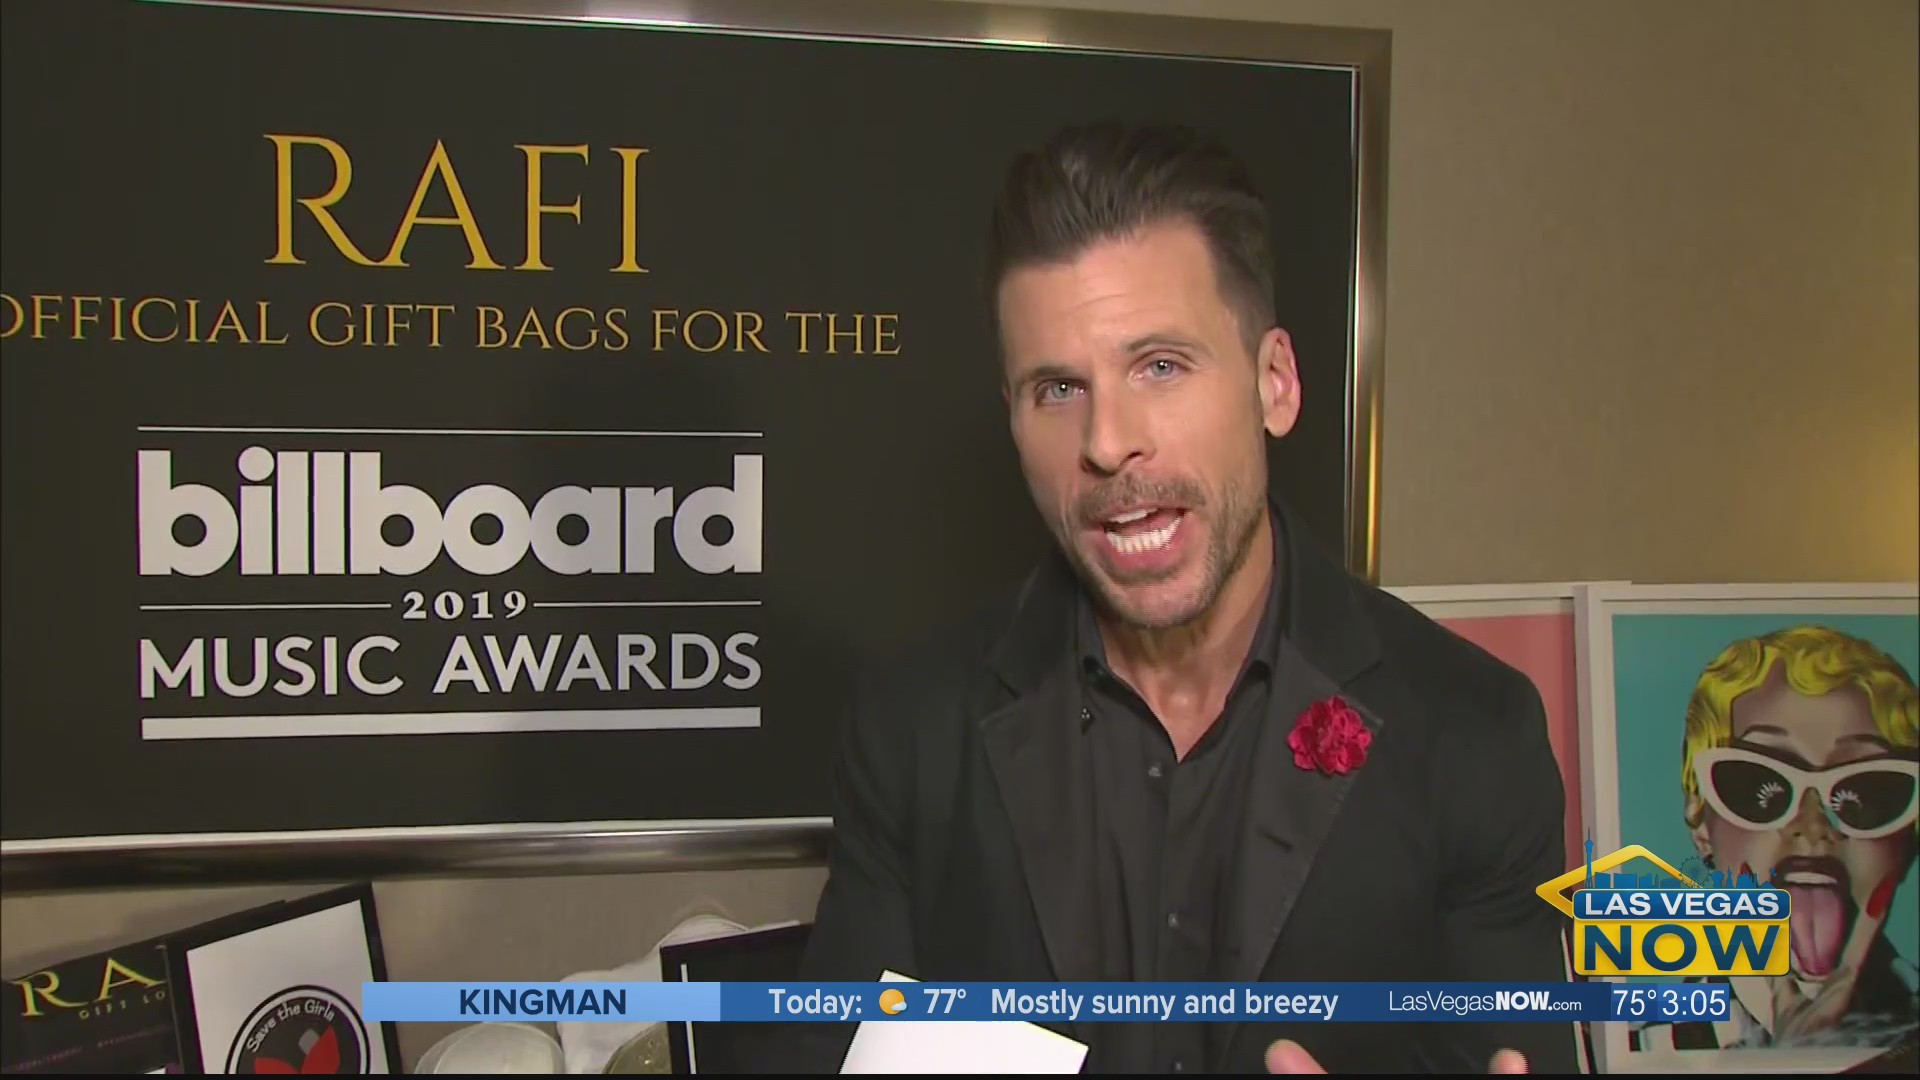 A look inside the Billboard Music Awards Rafi Gifting Lounge